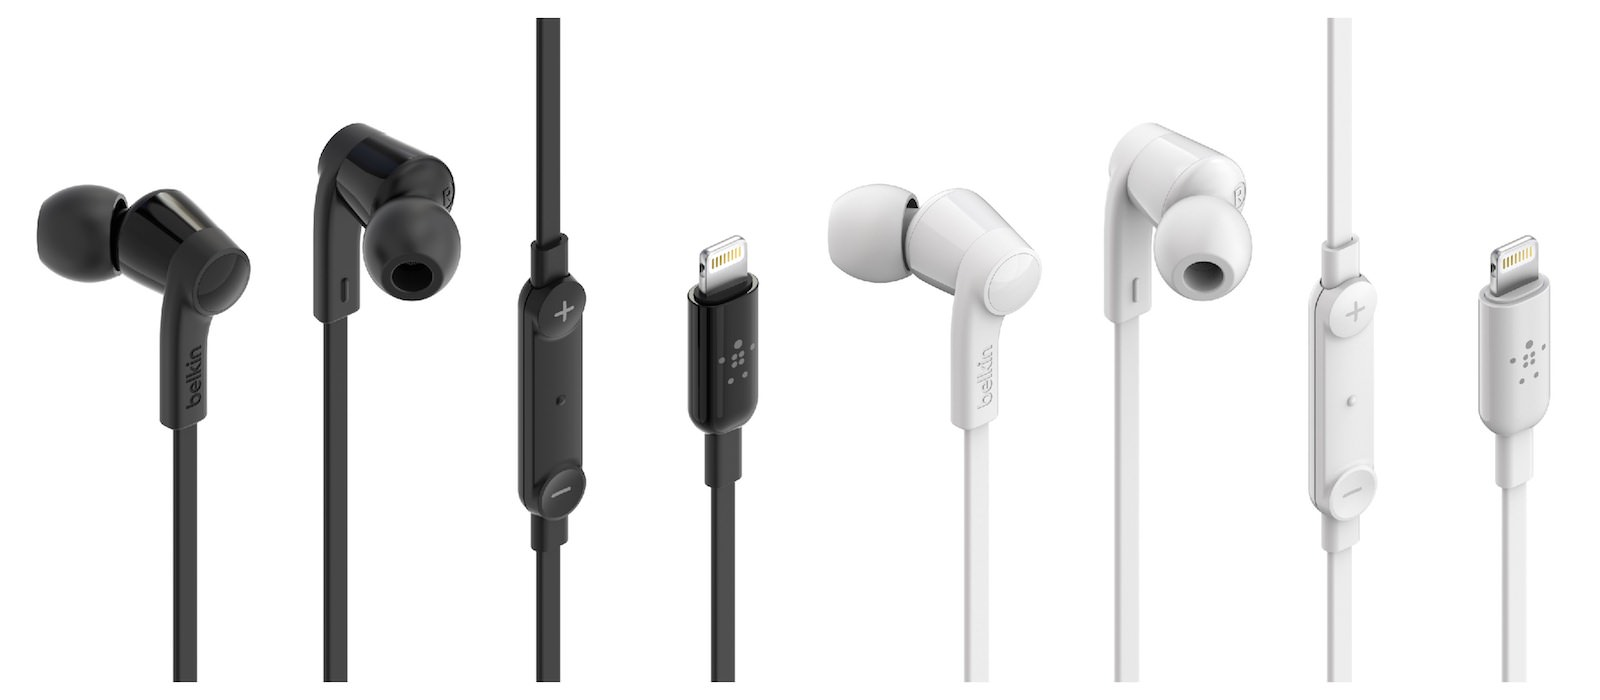 Belkin Lightning Earphones